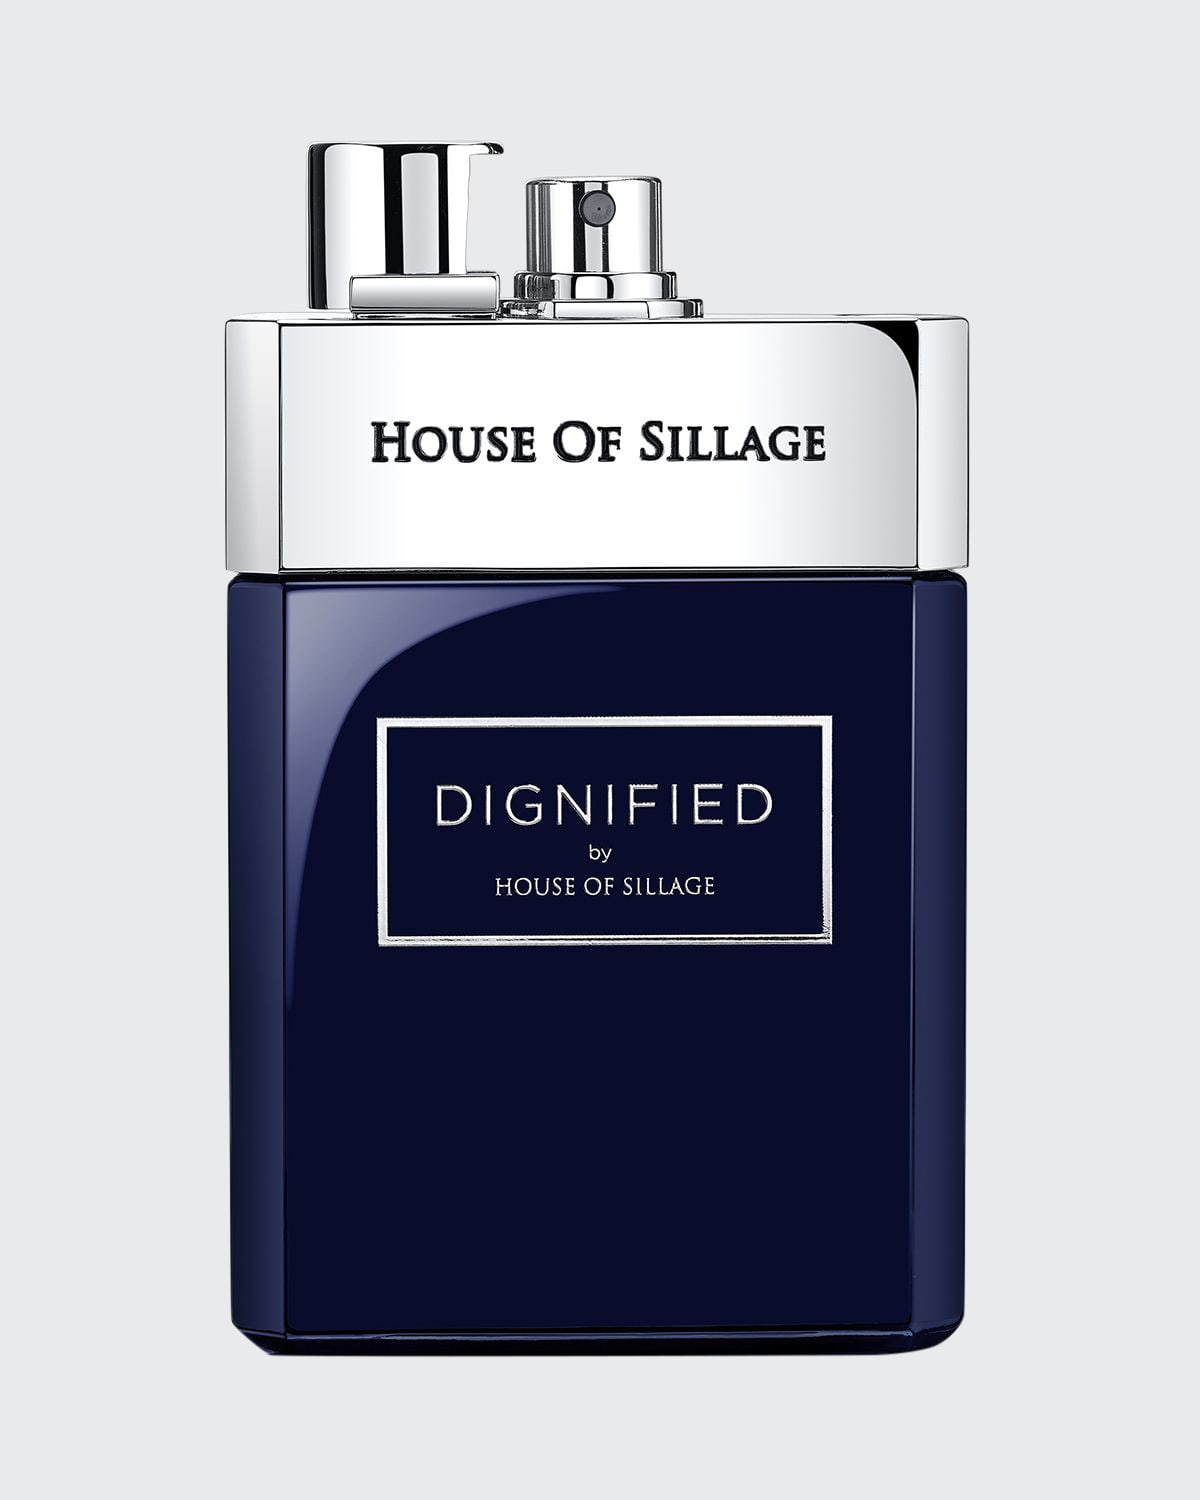 Signature Collection Dignified Fragrance for Men